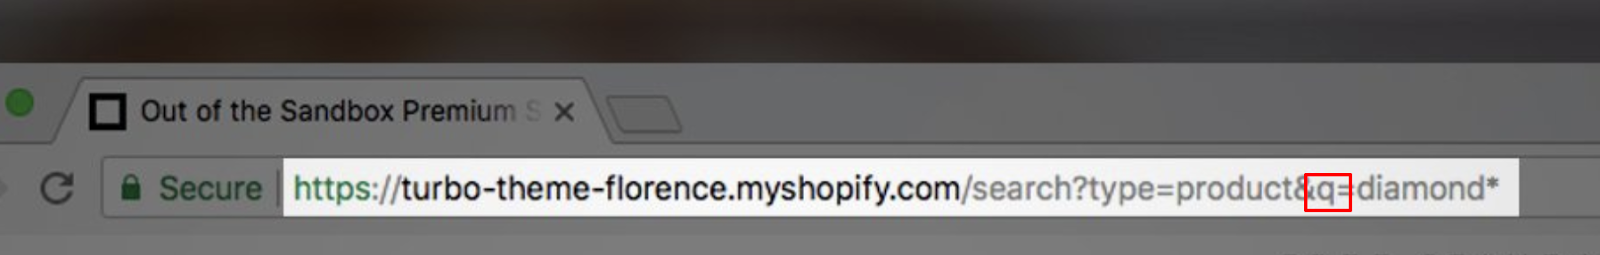 Screenshot showing an address bar